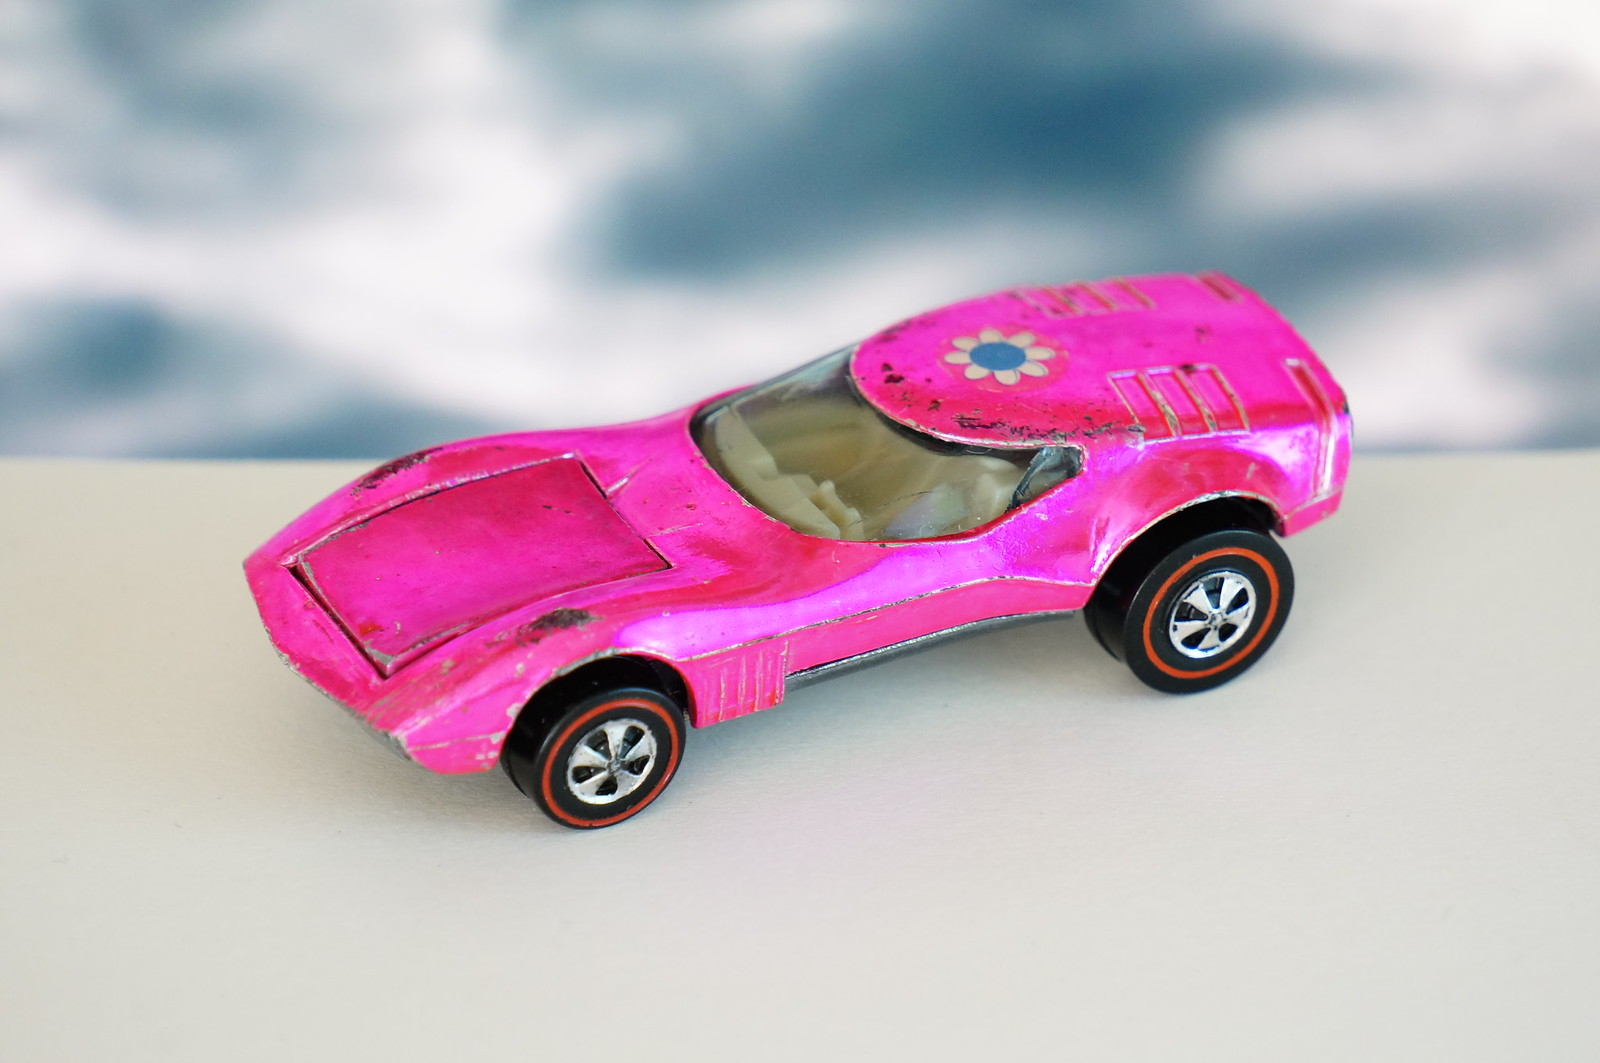 Hot Wheels Redline Hot Pink Torero